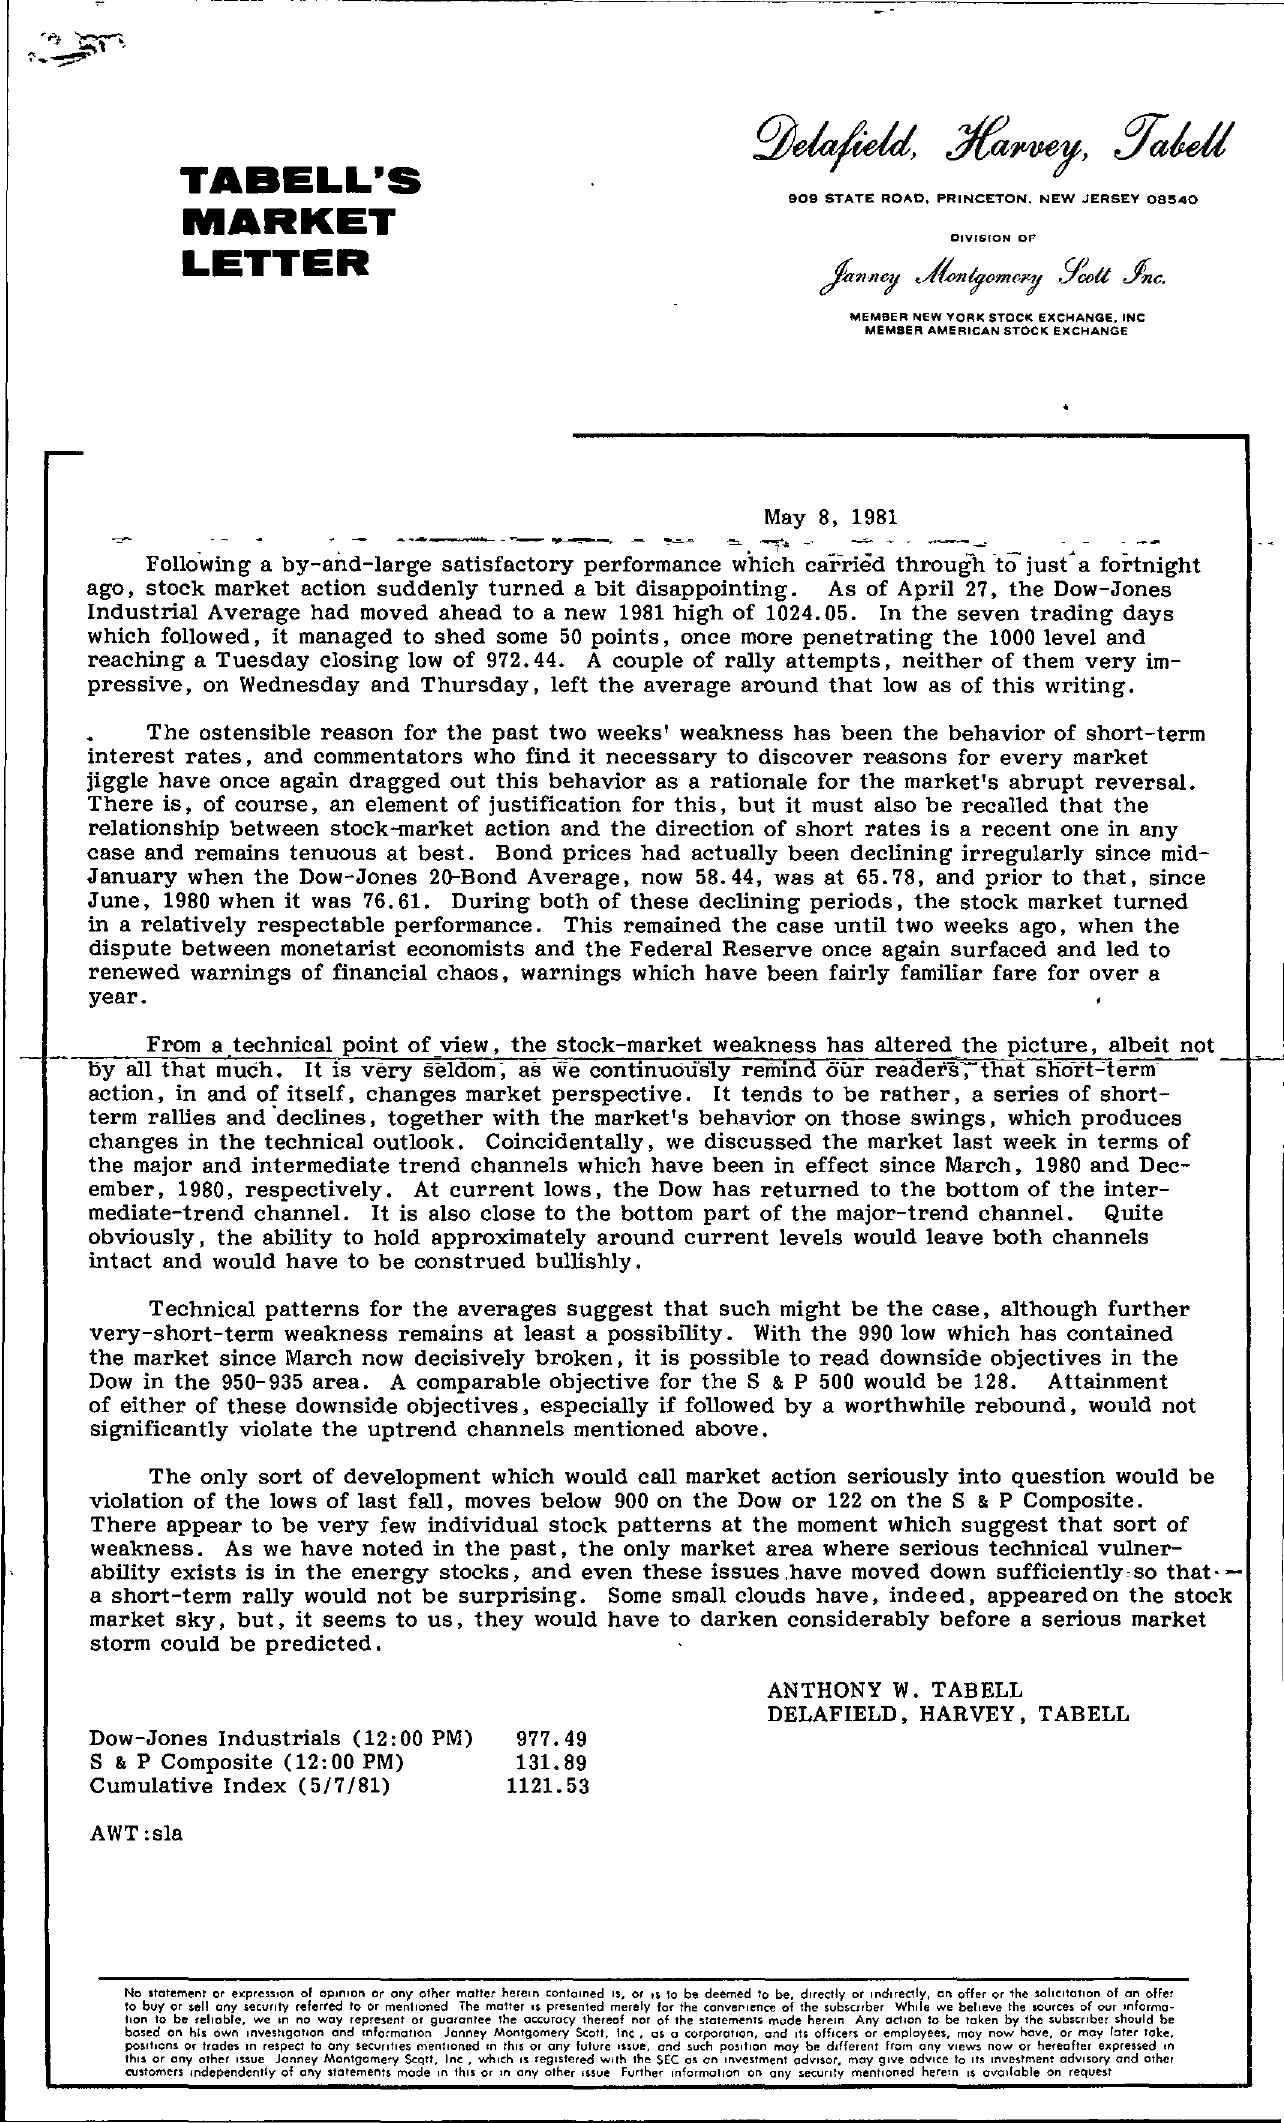 Tabell's Market Letter - May 08, 1981